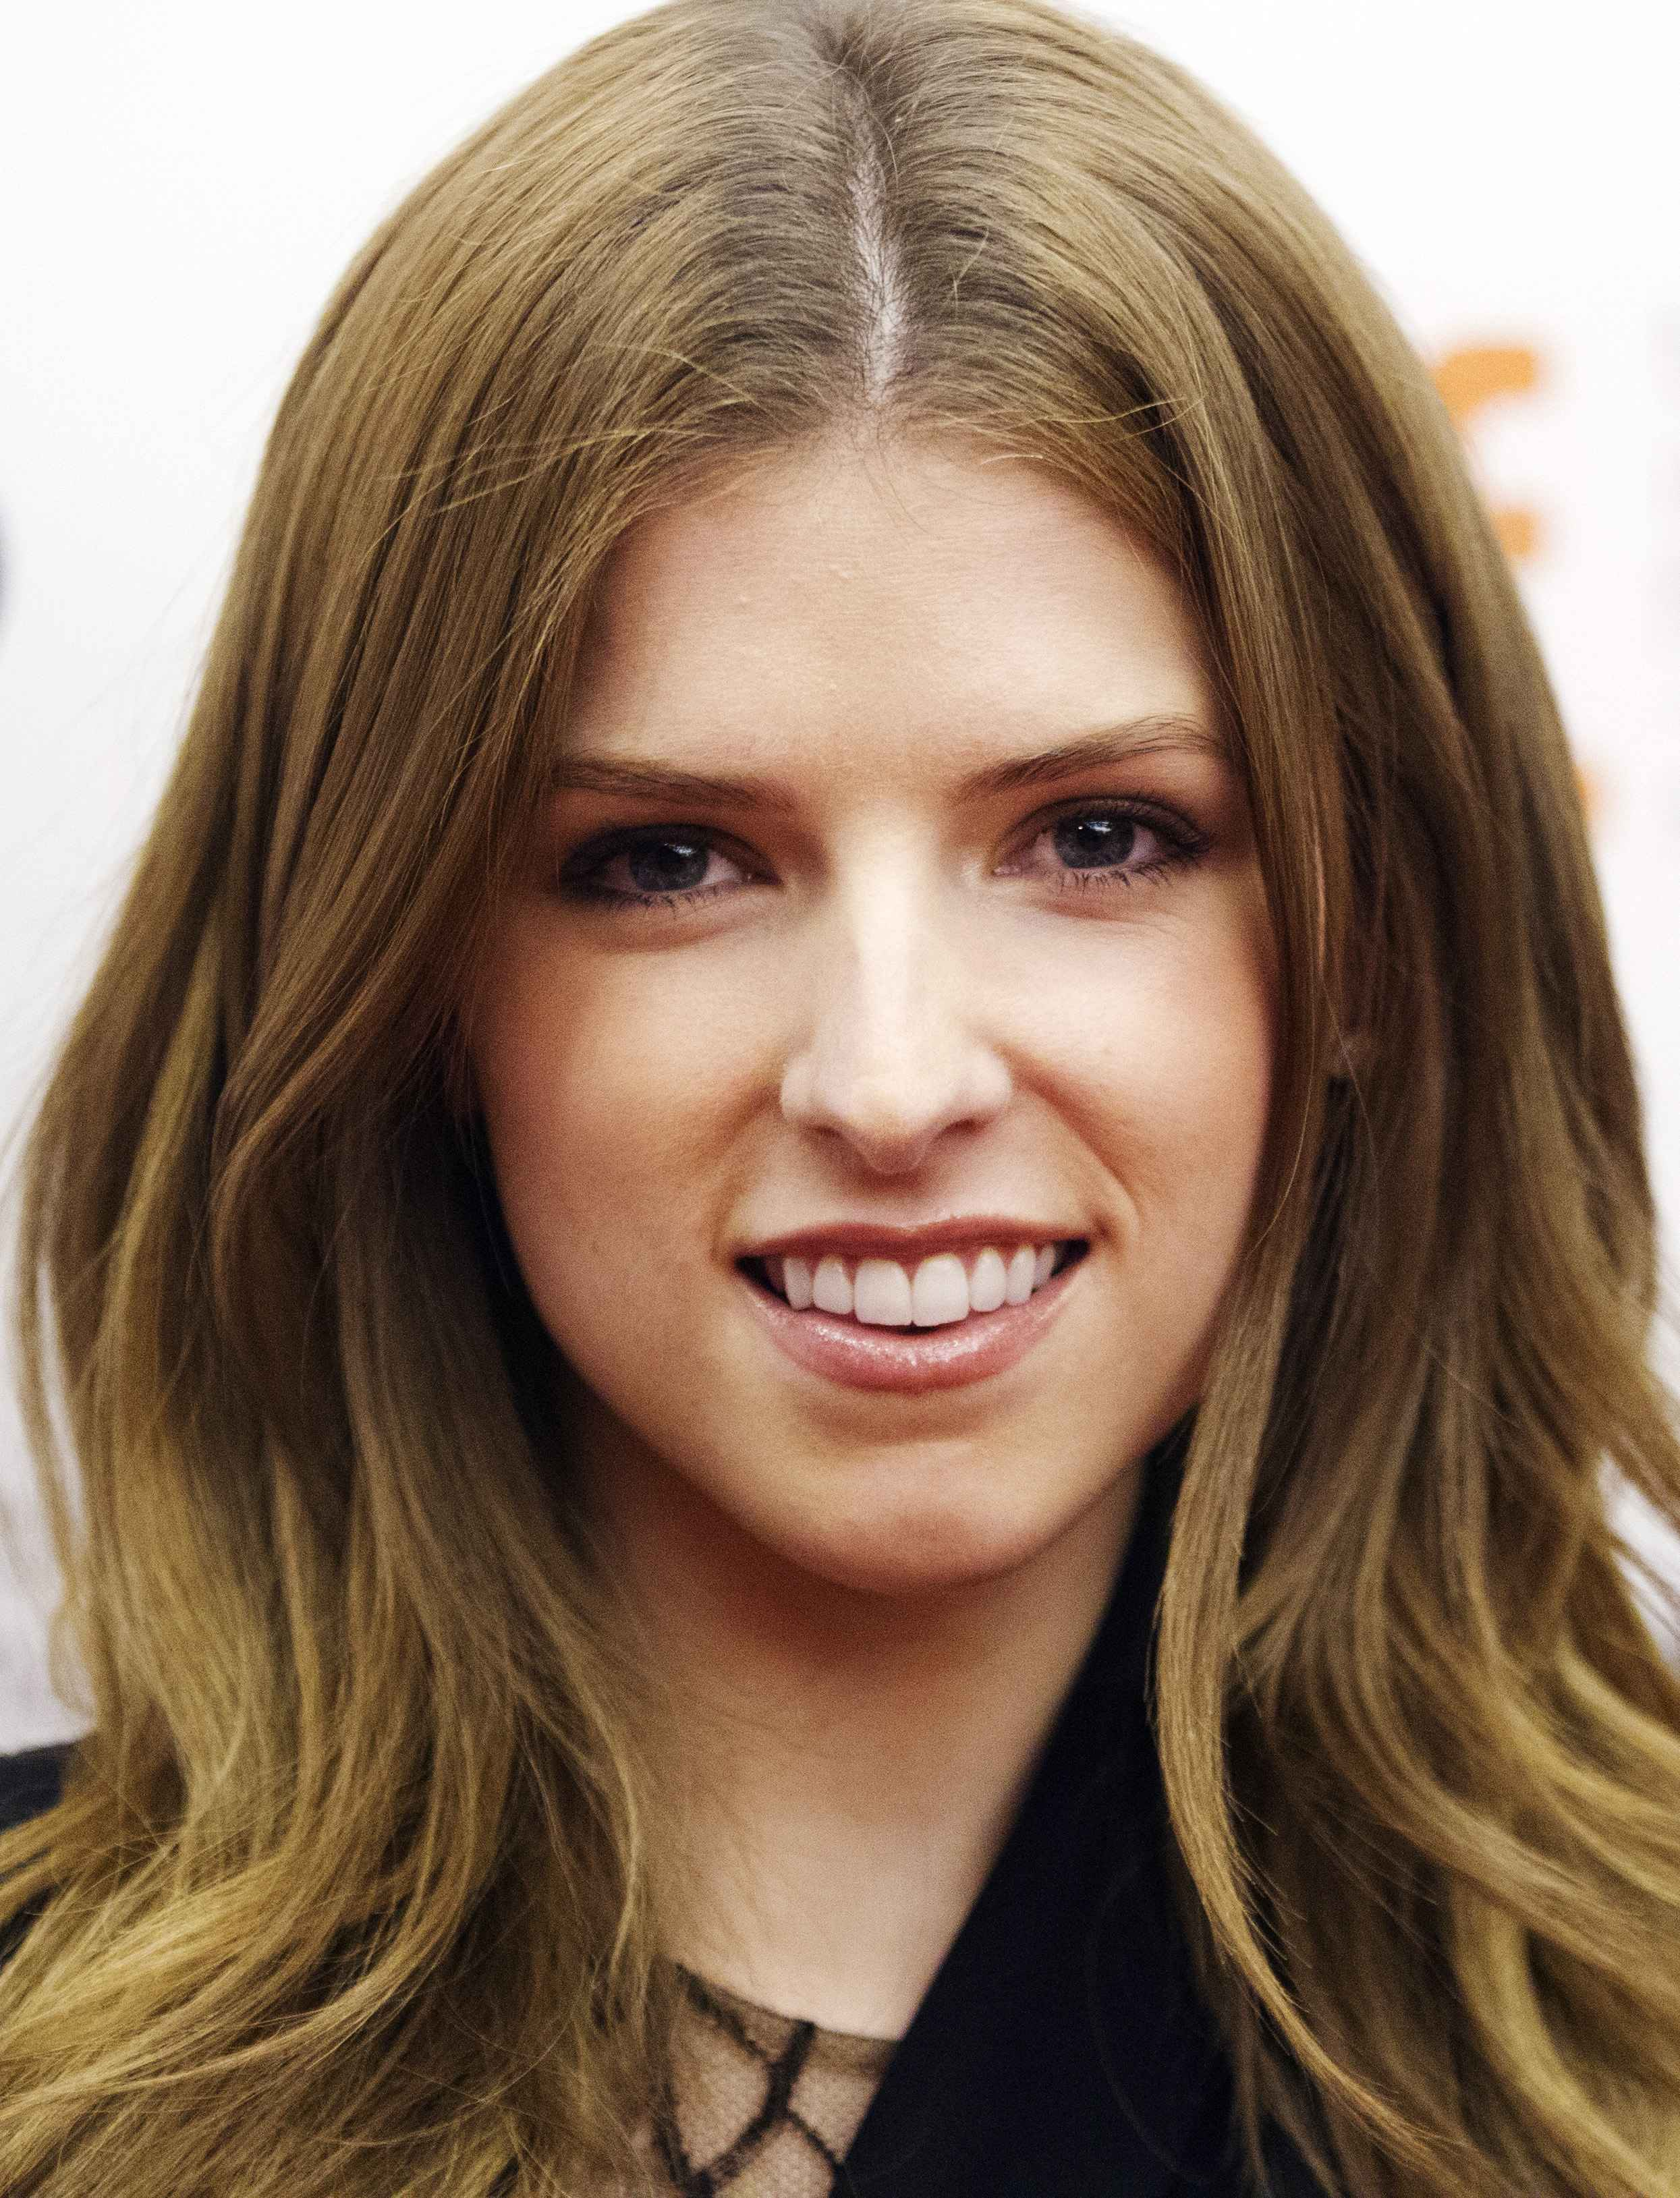 295094892_Anna_Kendrick_End_of_Watch_Premiere1_122_362lo.JPG